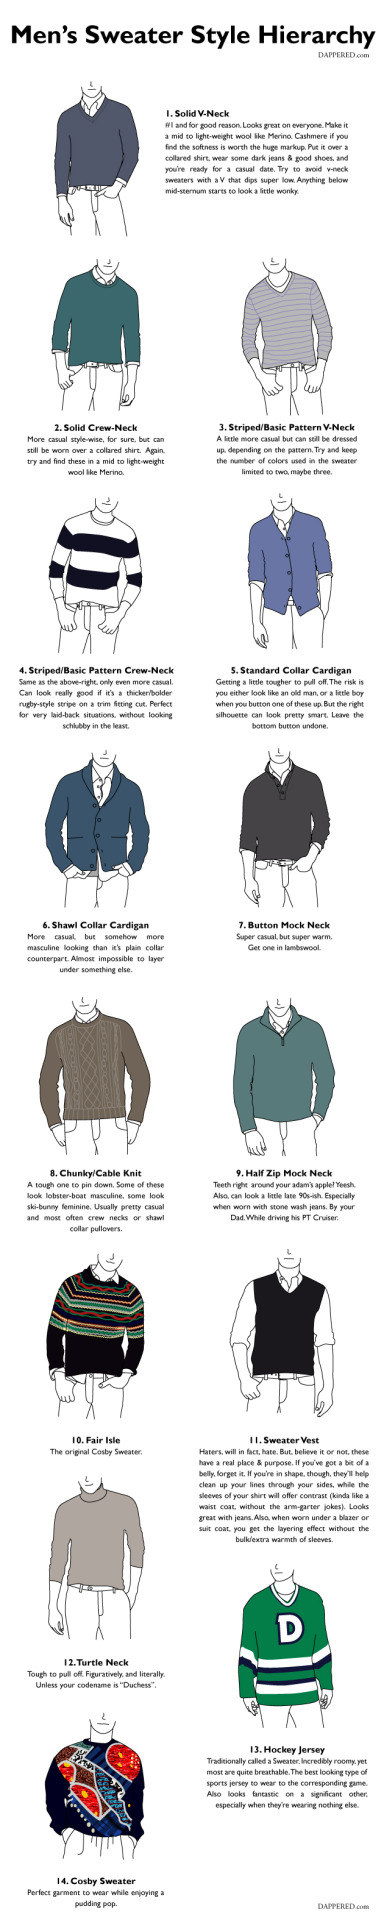 A guide to sweater styles.